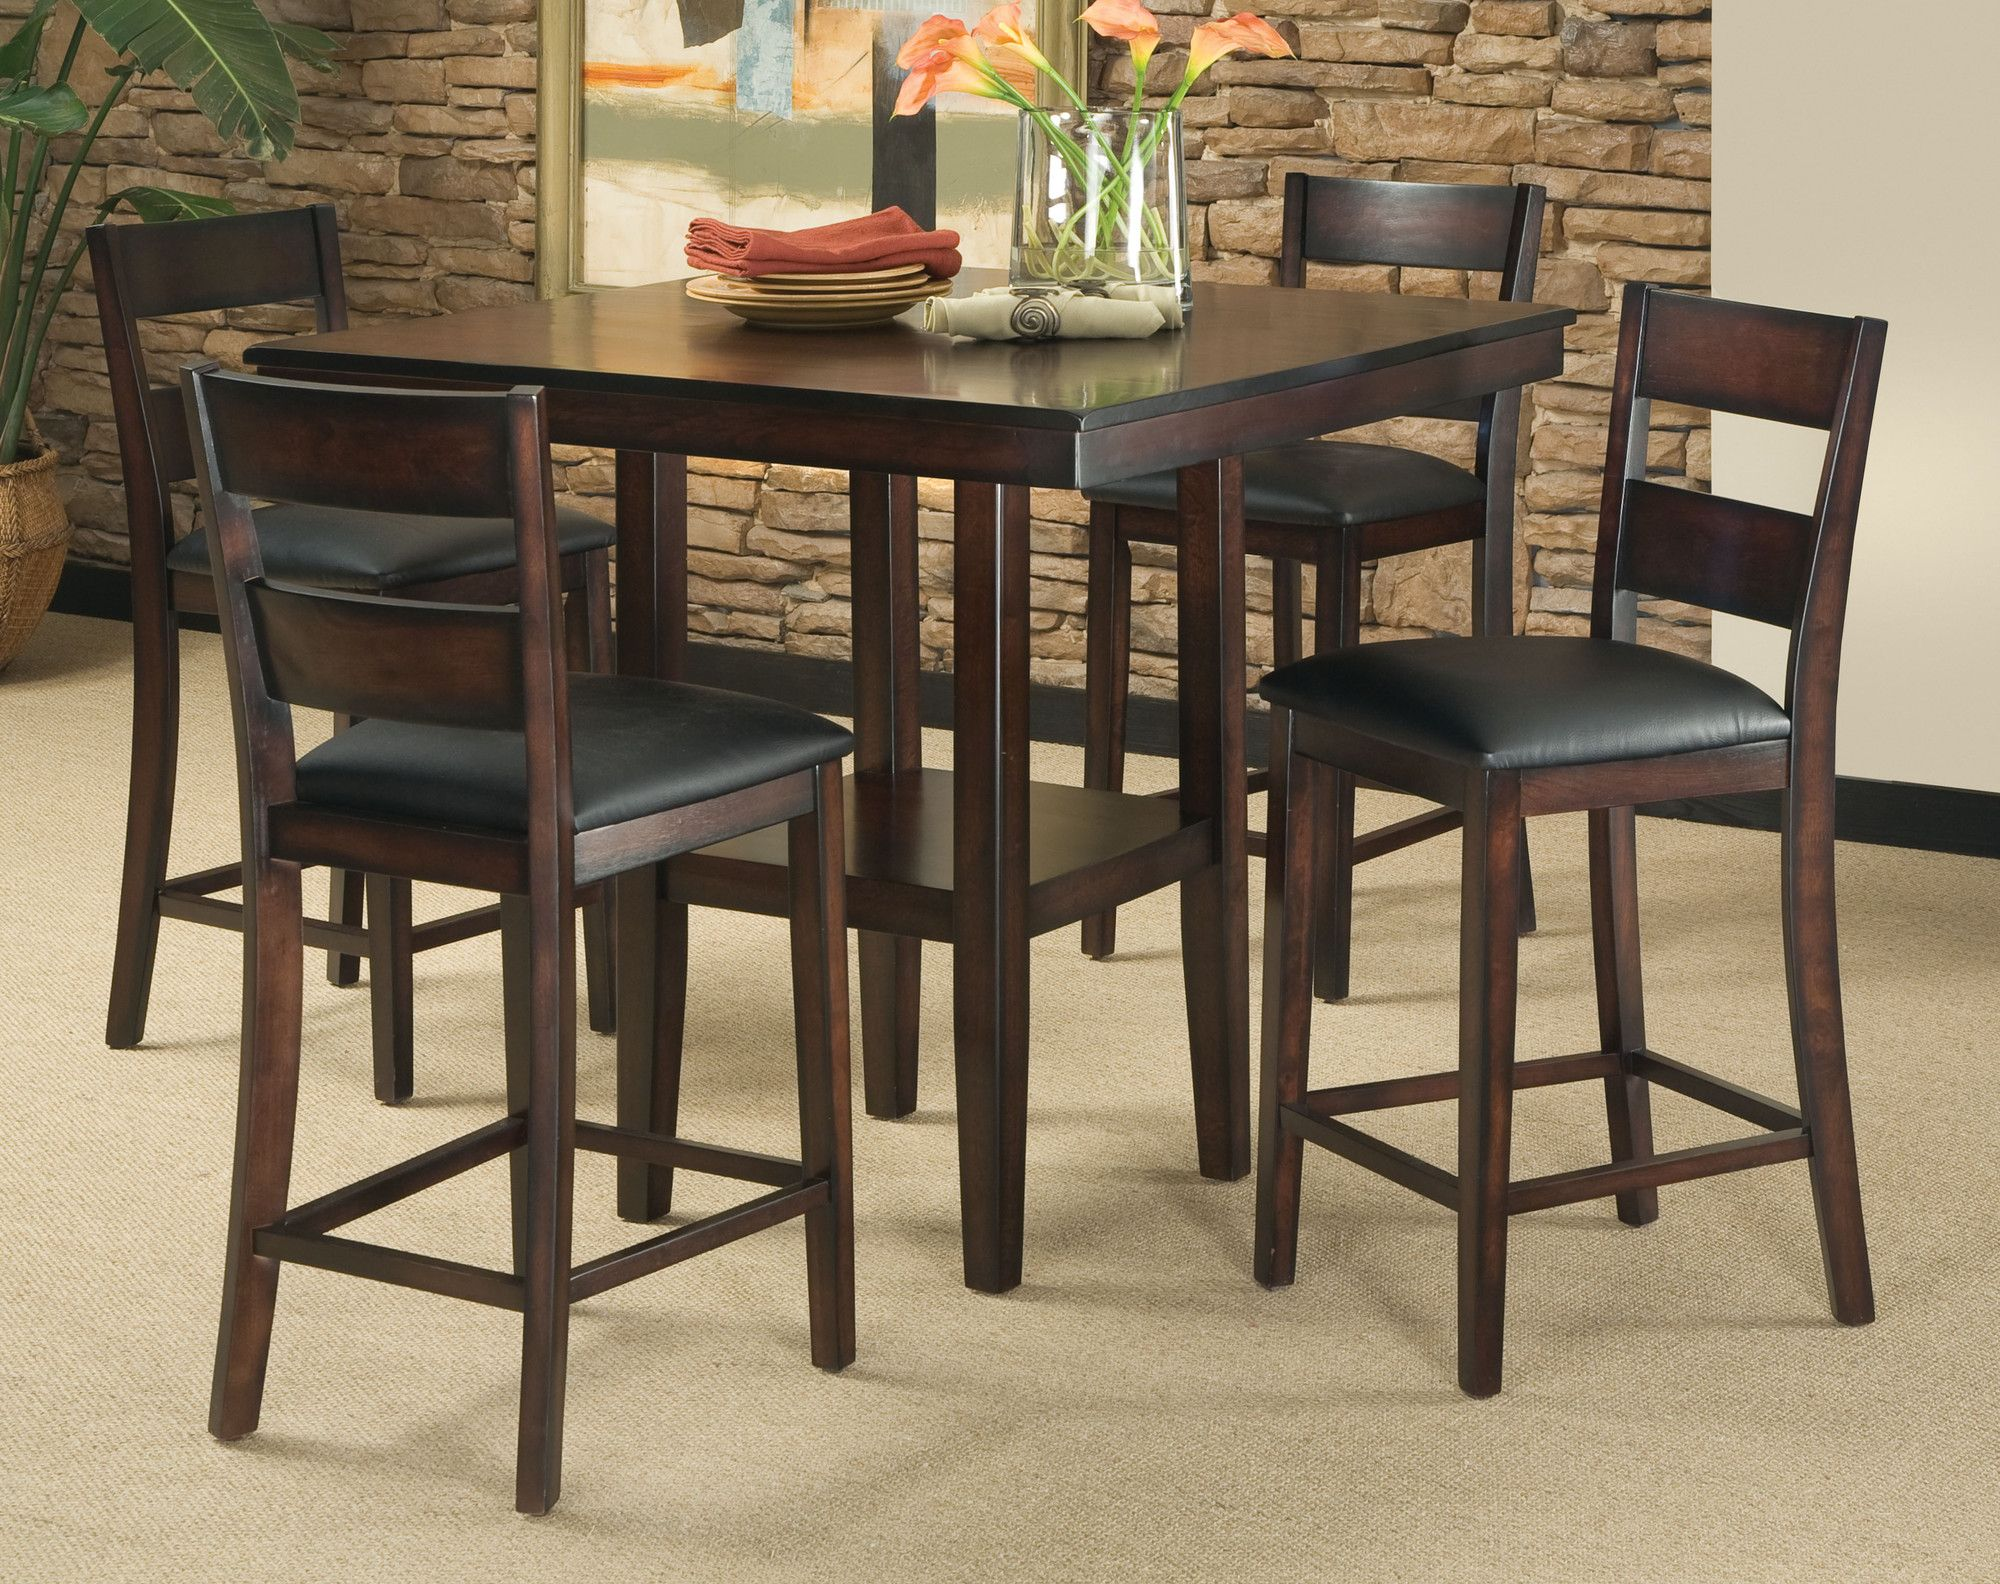 Standard Furniture Pendelton Counter Height Table and Four Stools in Dark cherry My new kitchen table! & 29 best Dining Table images on Pinterest | Coastal furniture ...